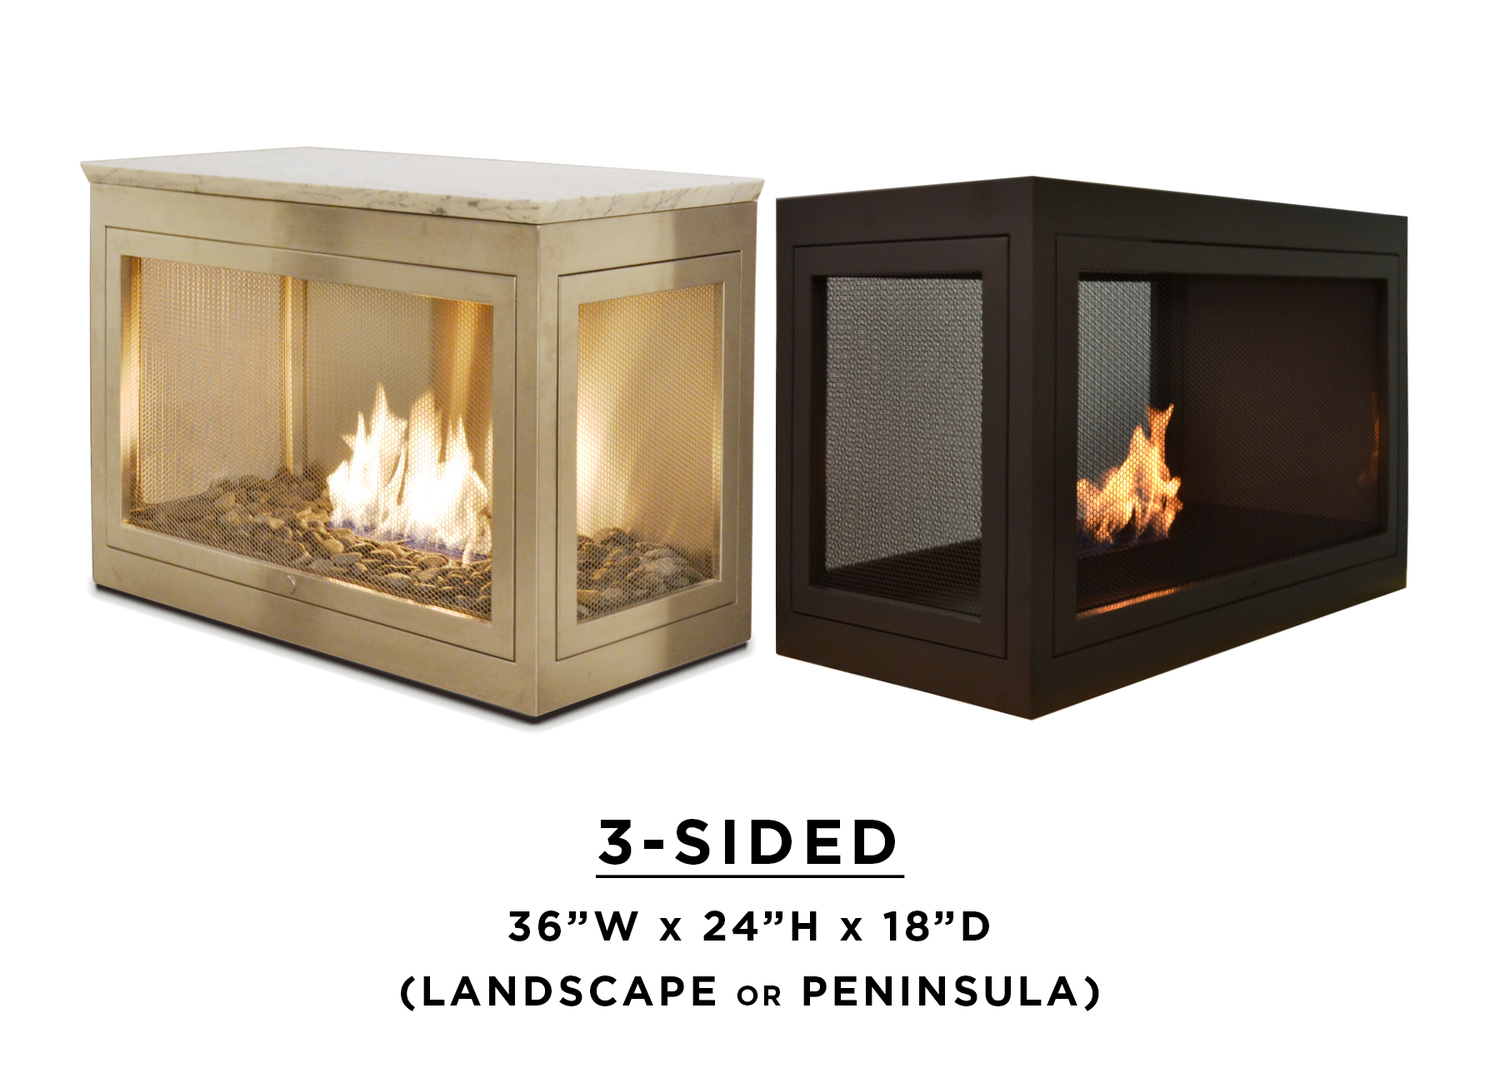 Fireplace Products 3 Sided Fireplace Summer Candles By Hearthcabinet